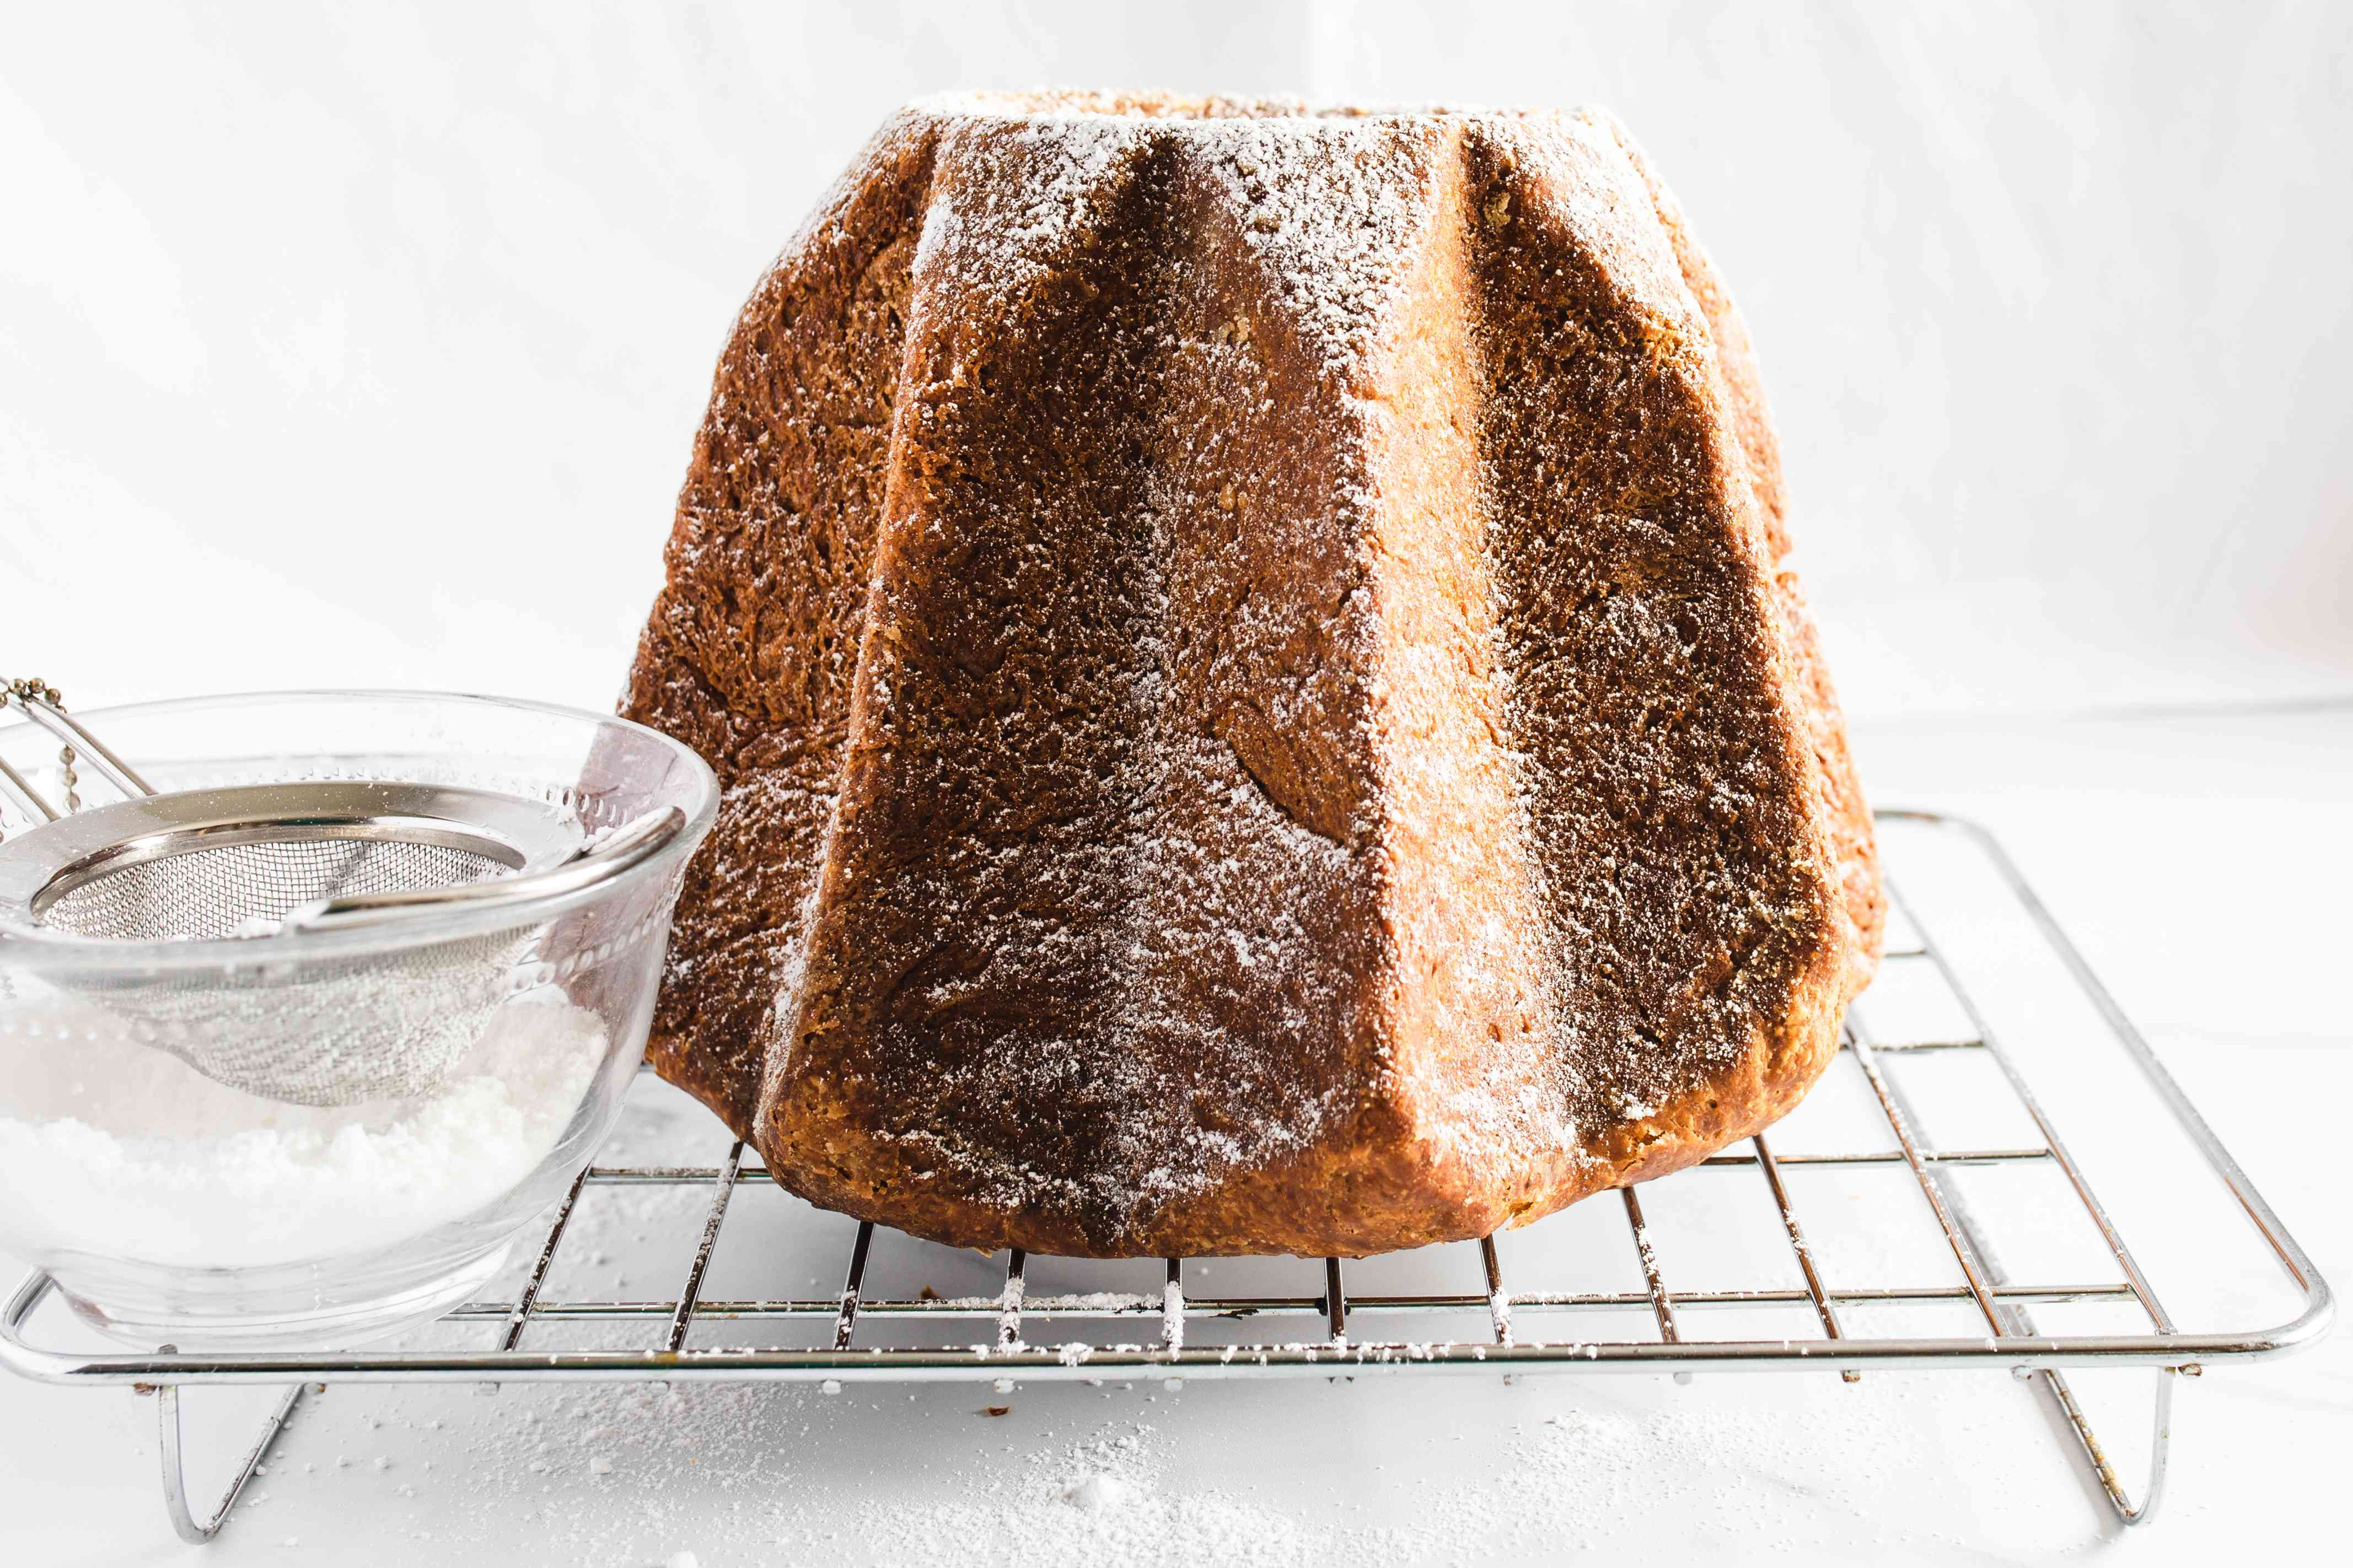 Dust with confectioners' sugar